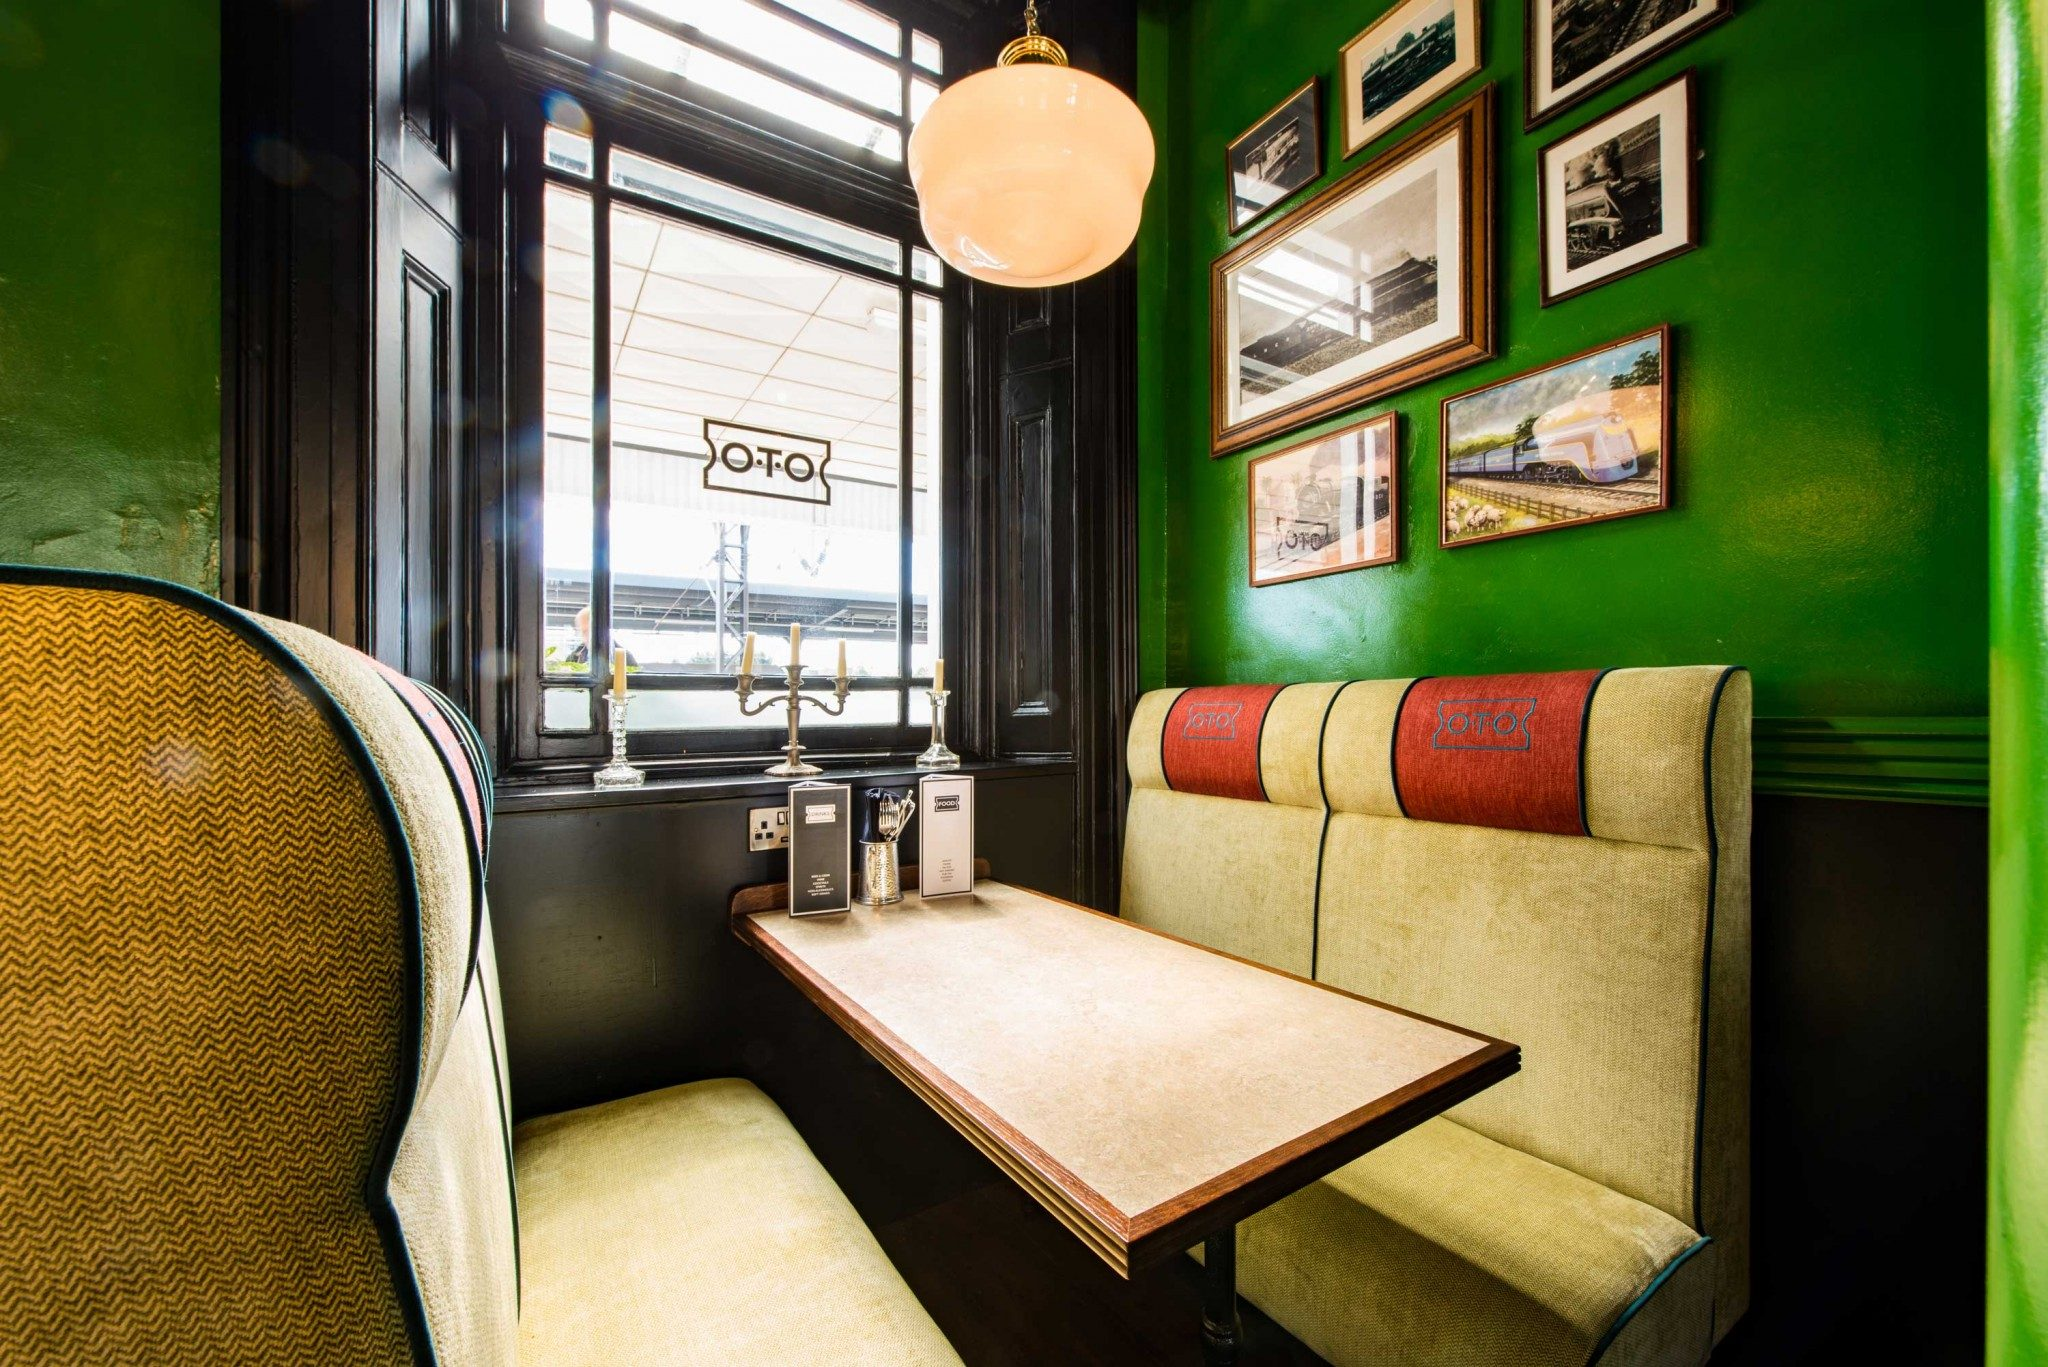 mackenzie wheeler are pub architects and interior designers based in shoreditch london specializing in victorian ticket office conservation and restoration